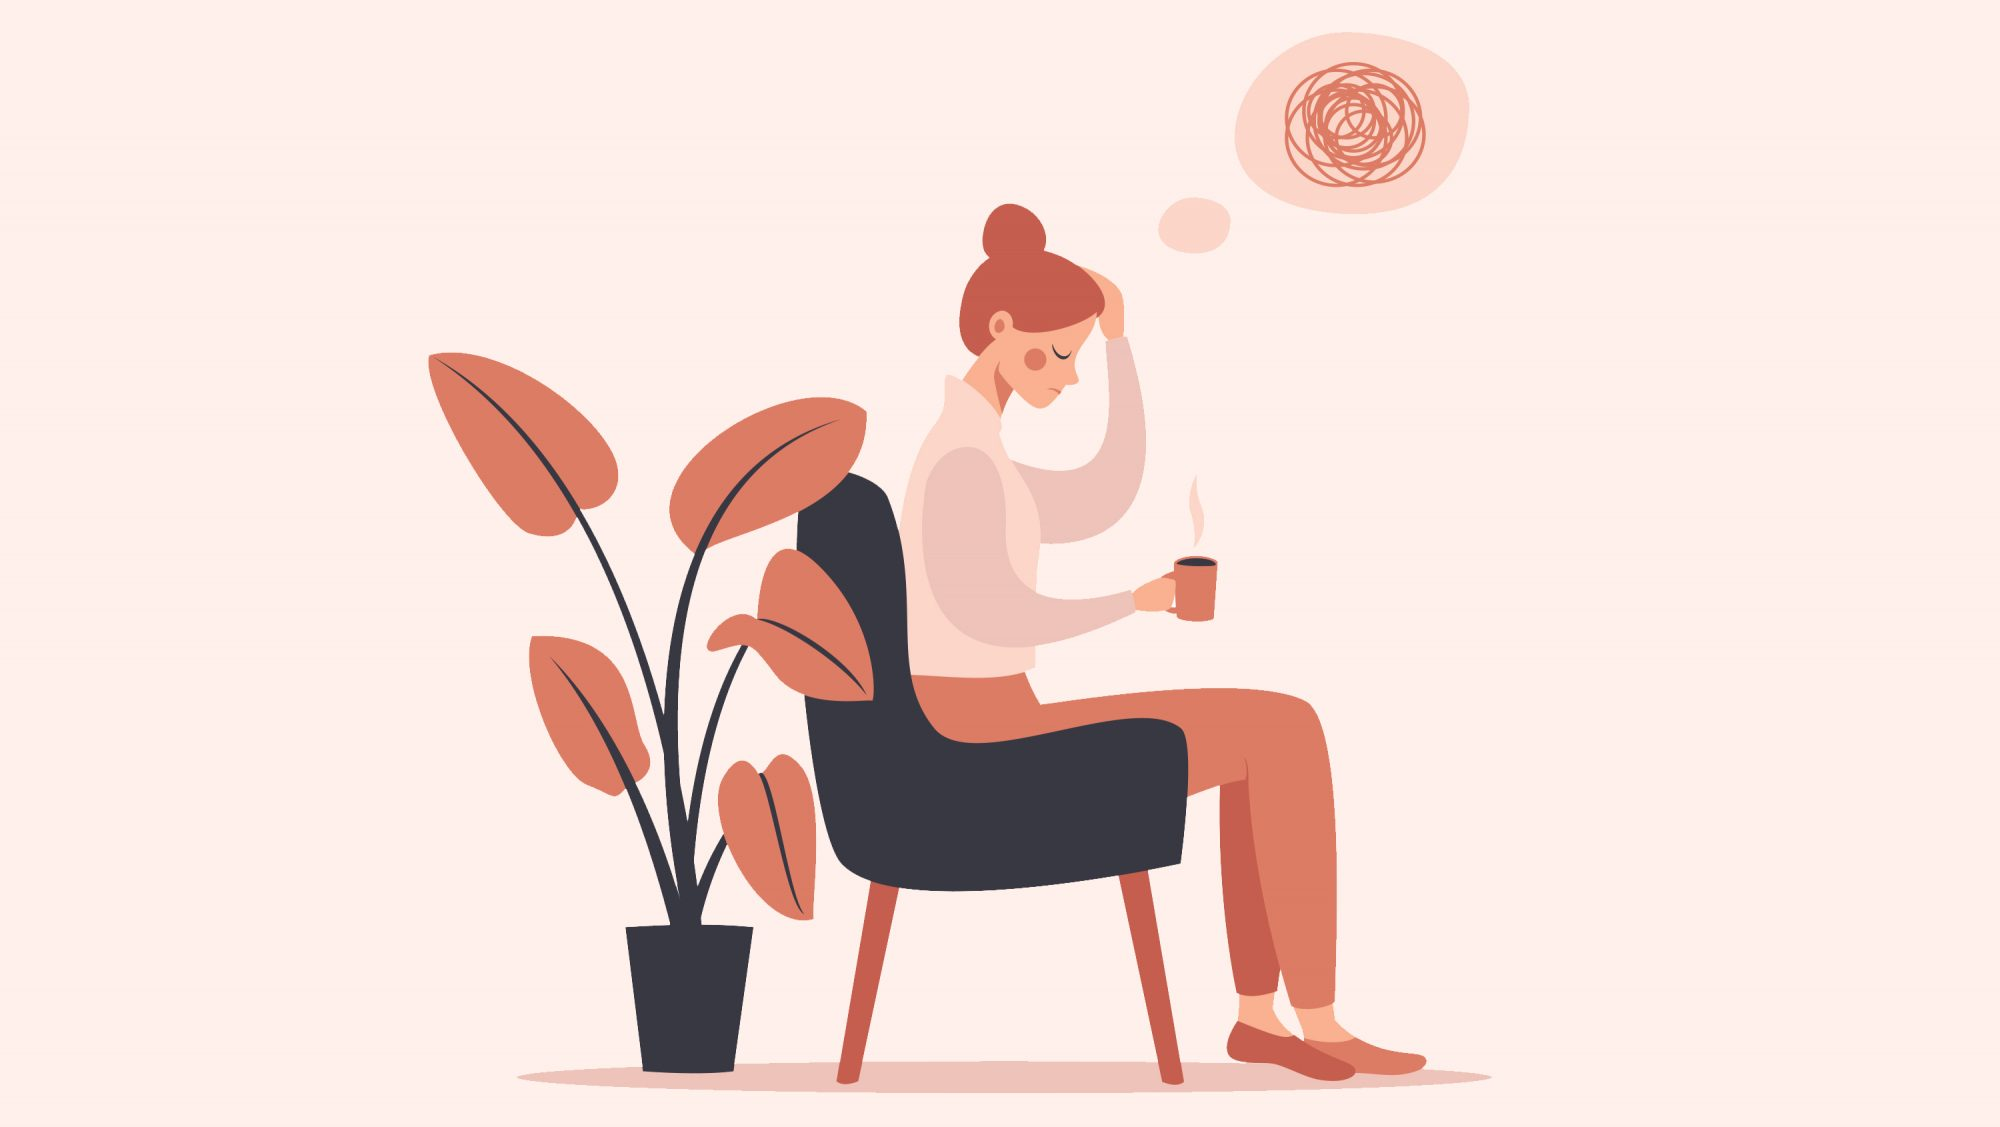 Anxiety Symptoms: illustration of woman with anxiety thought bubble